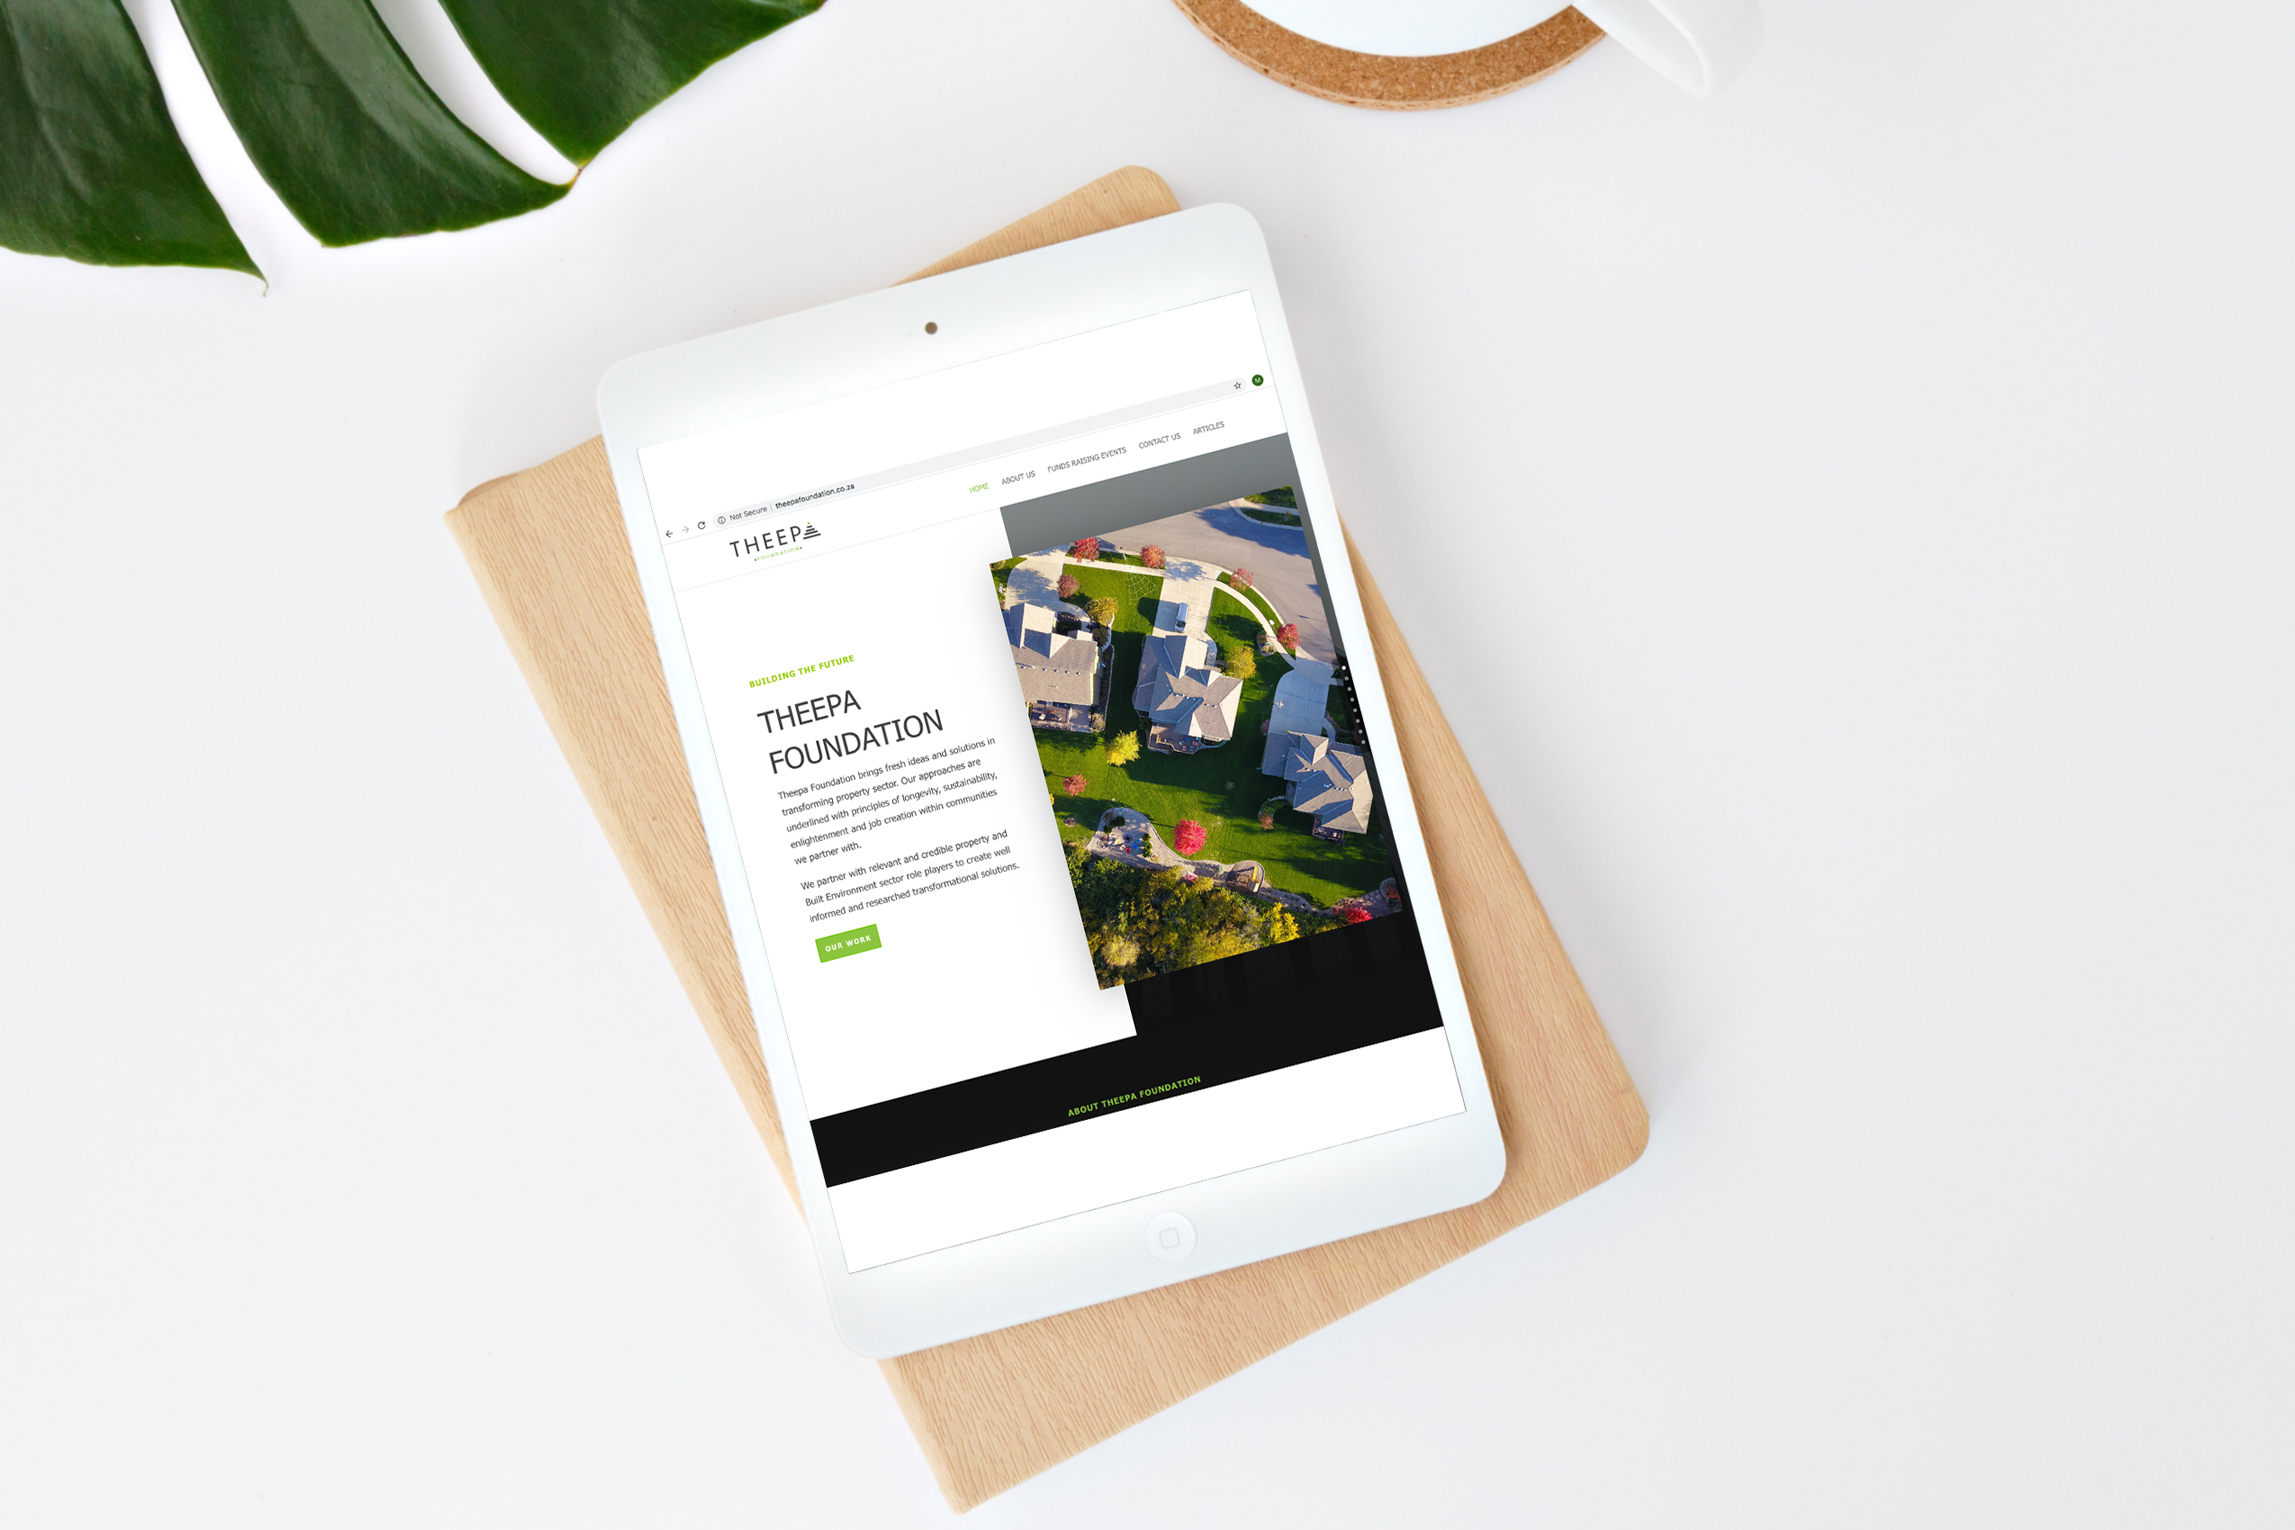 Theepa-Foundation-Website-on-tablet